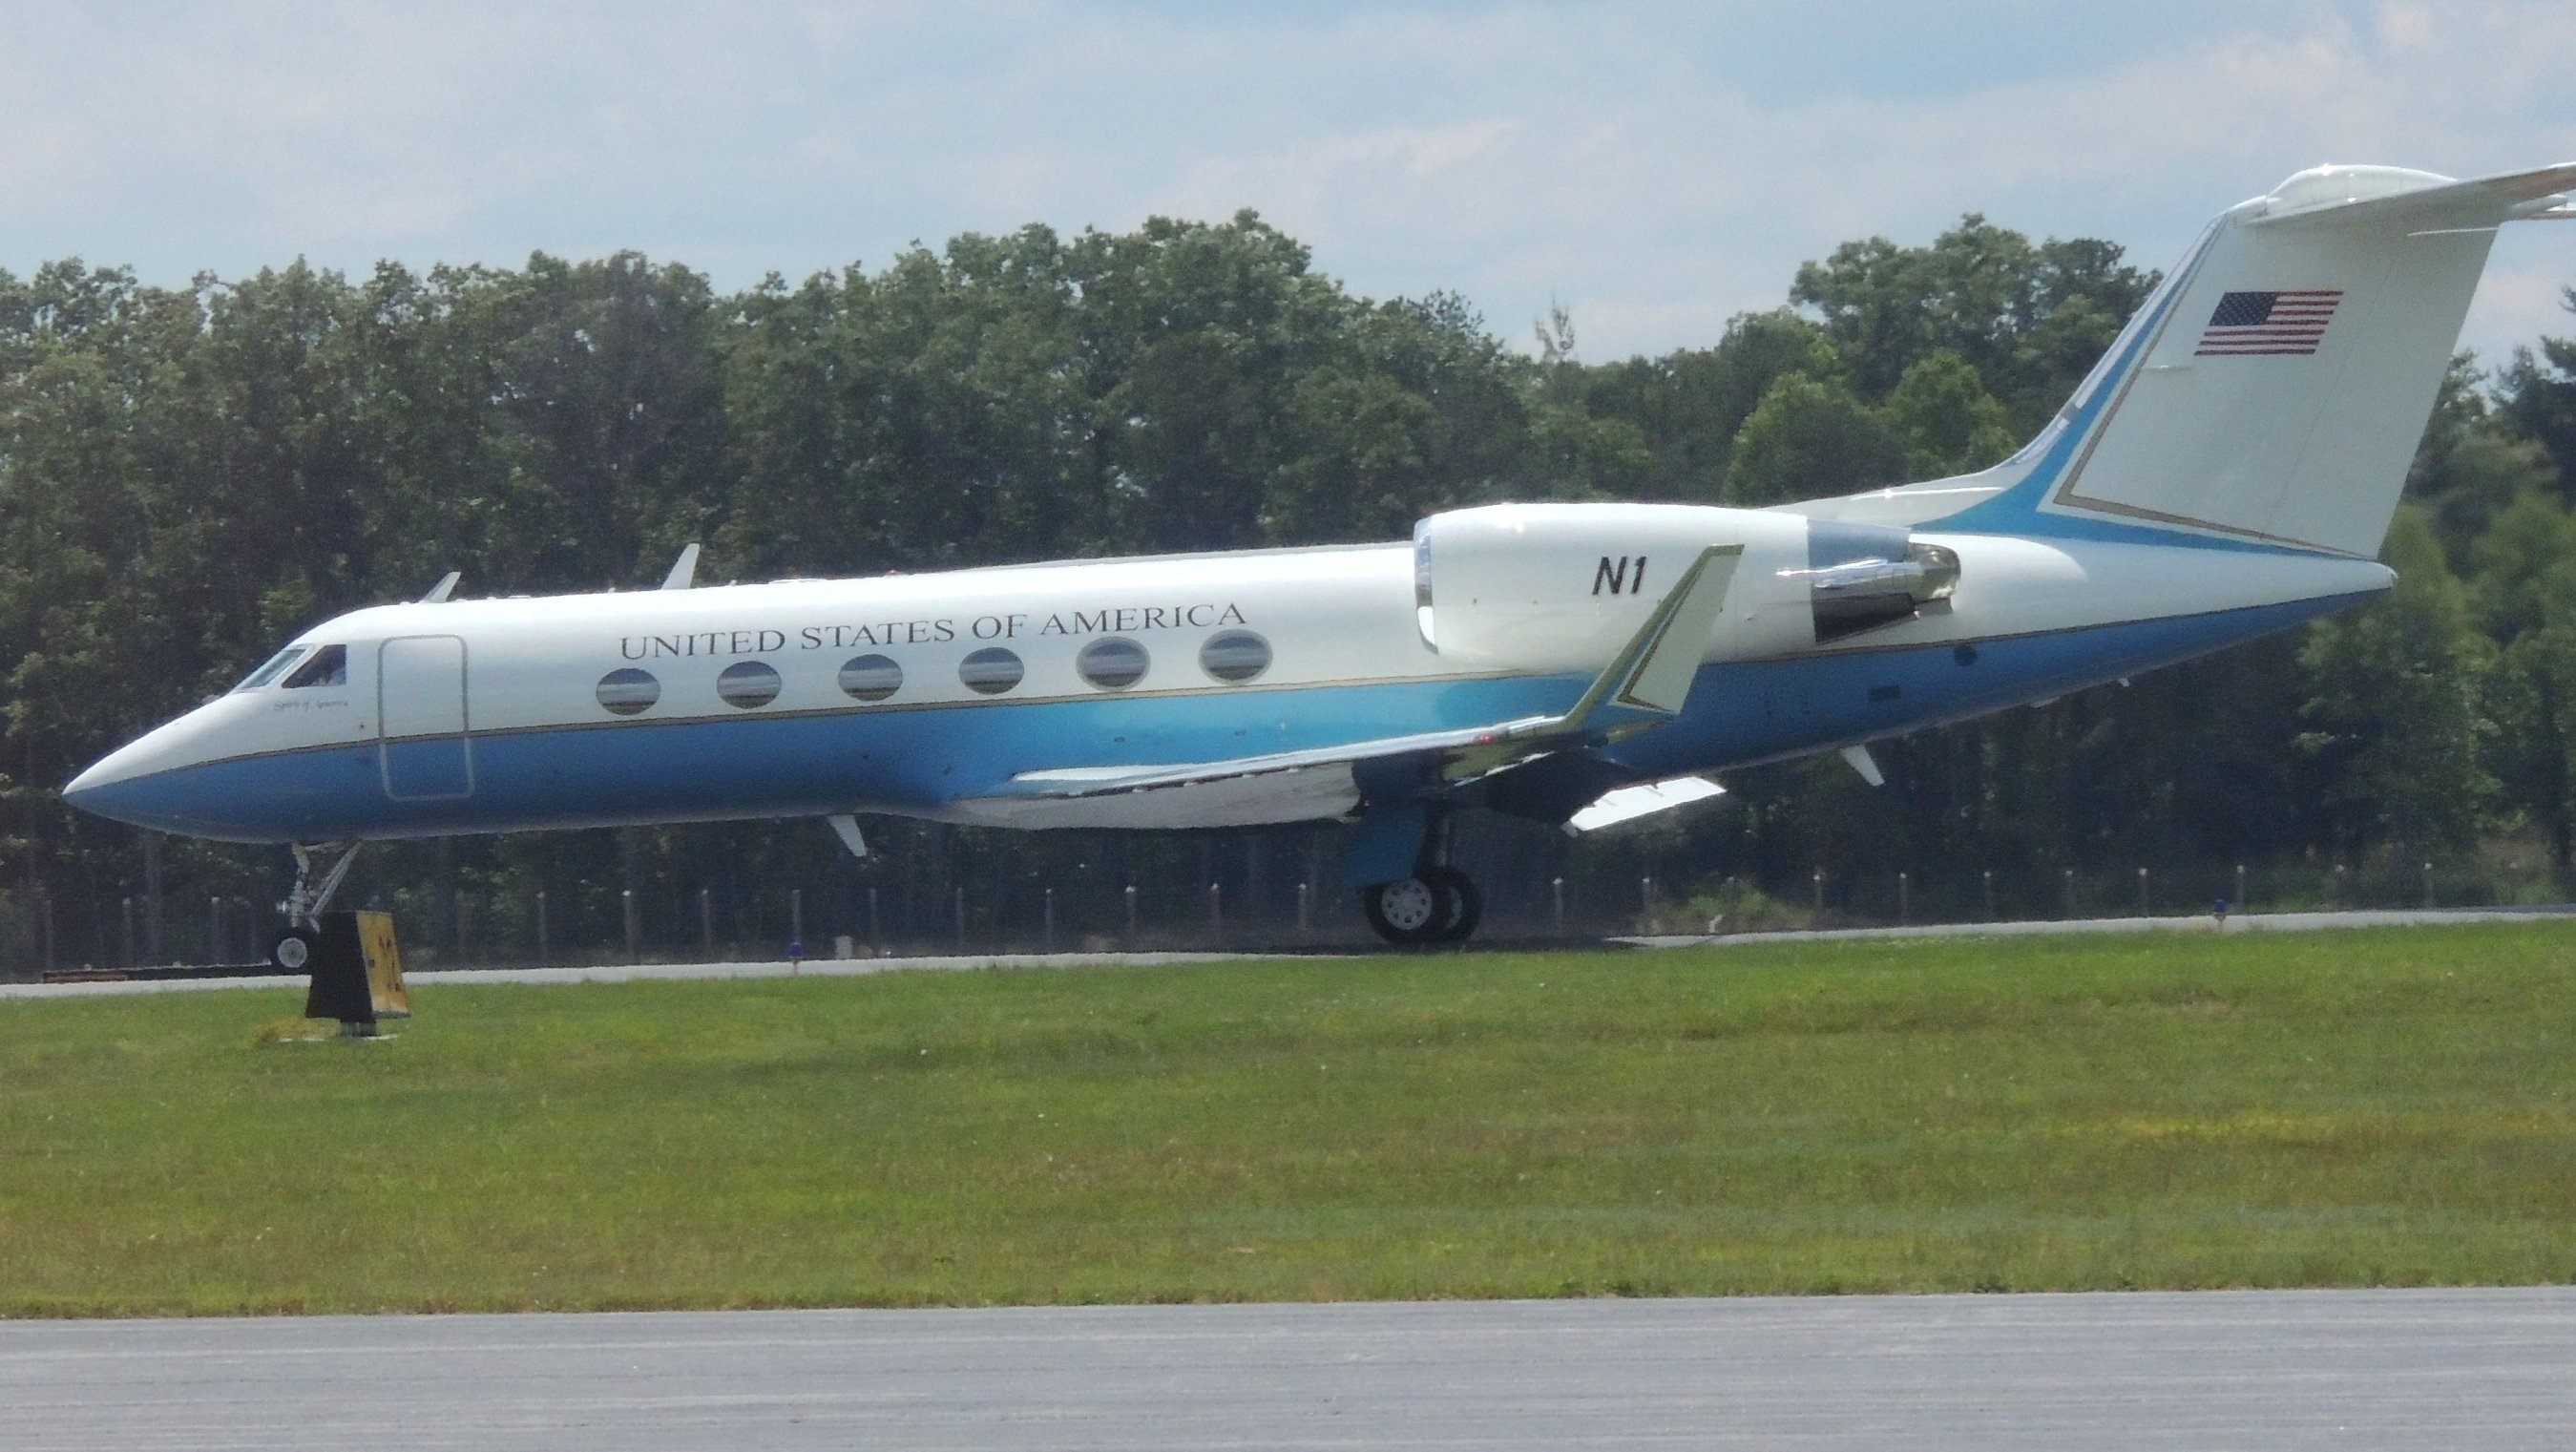 This had just landed at Asheville NC while we were waiting on Pam to arrive